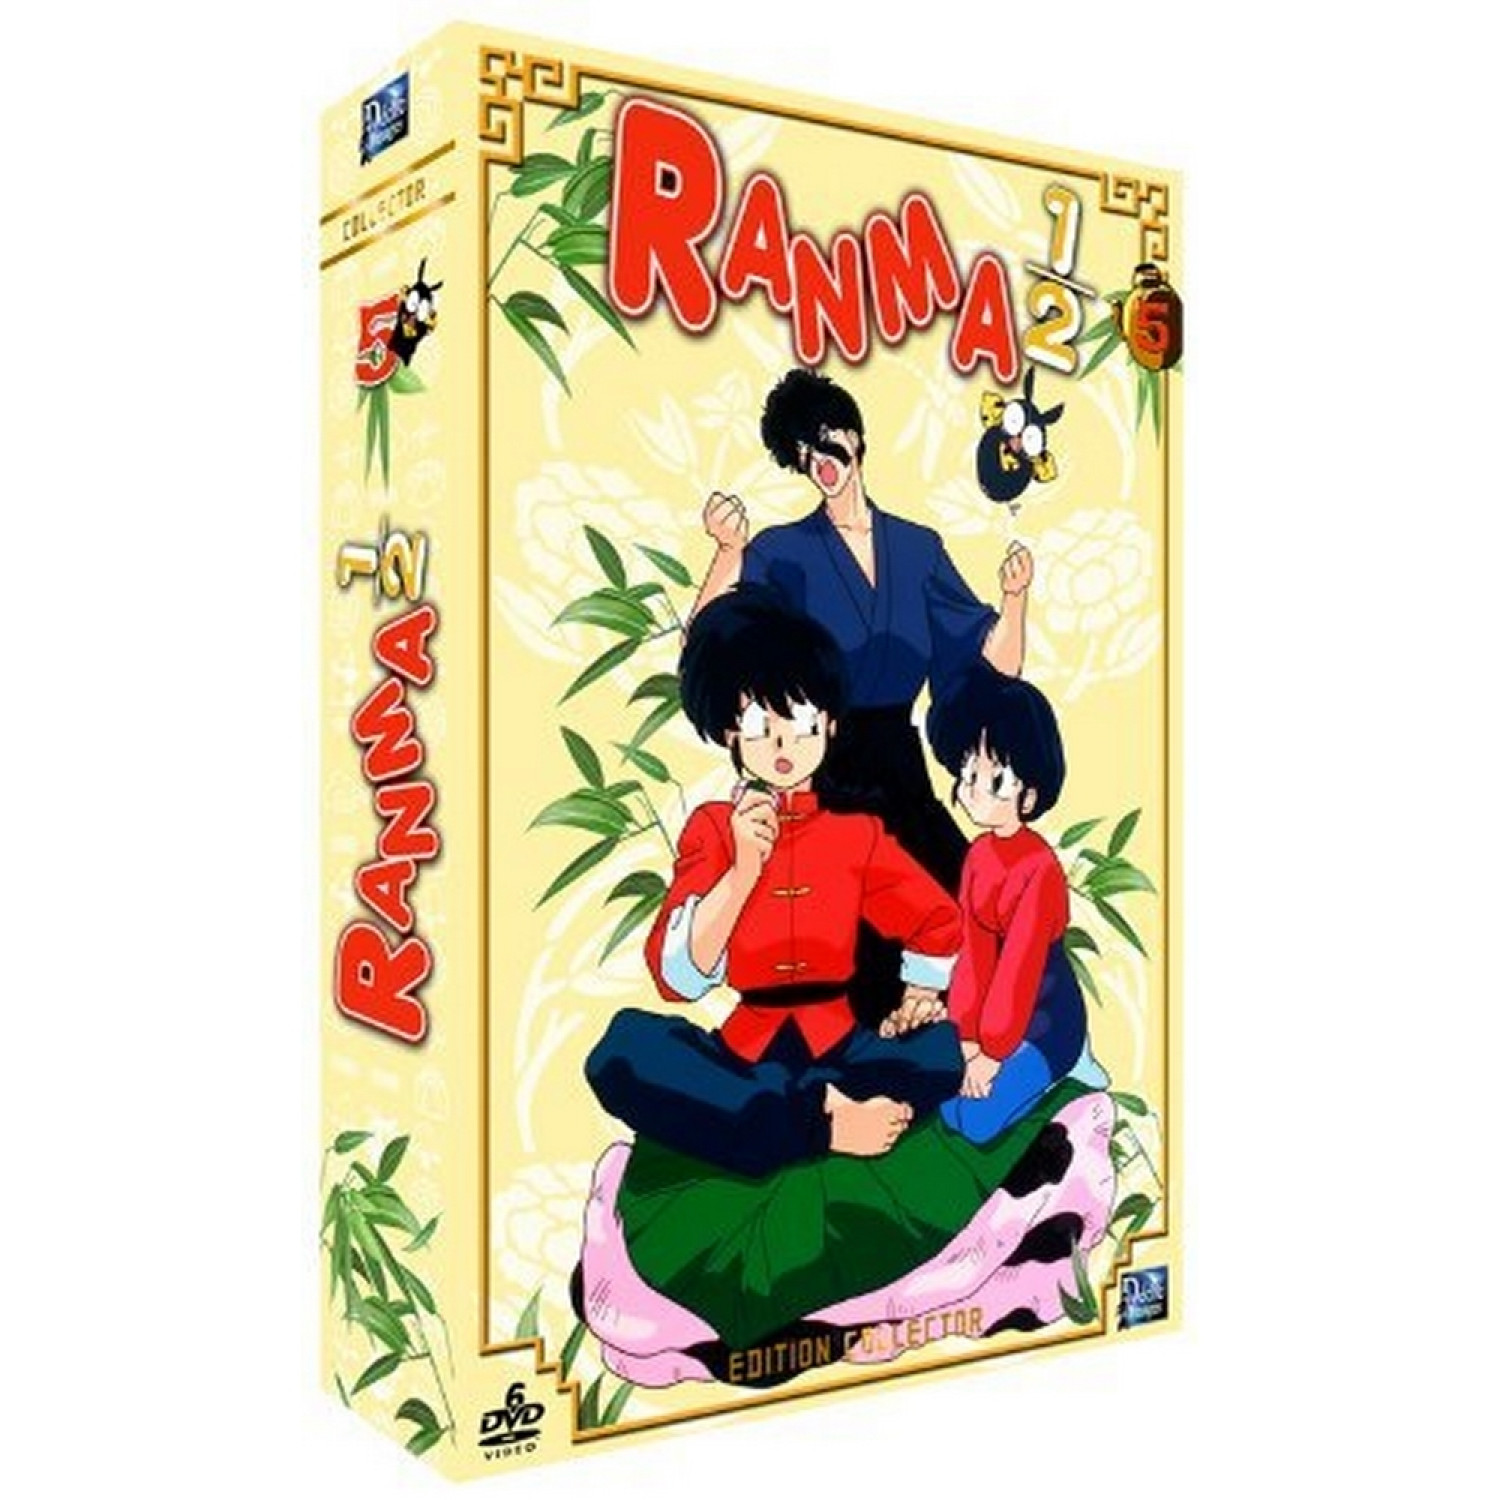 Ranma 1/2 - Partie 5  Non Censuree) - Edition Collector  6 Dvd + Livret)